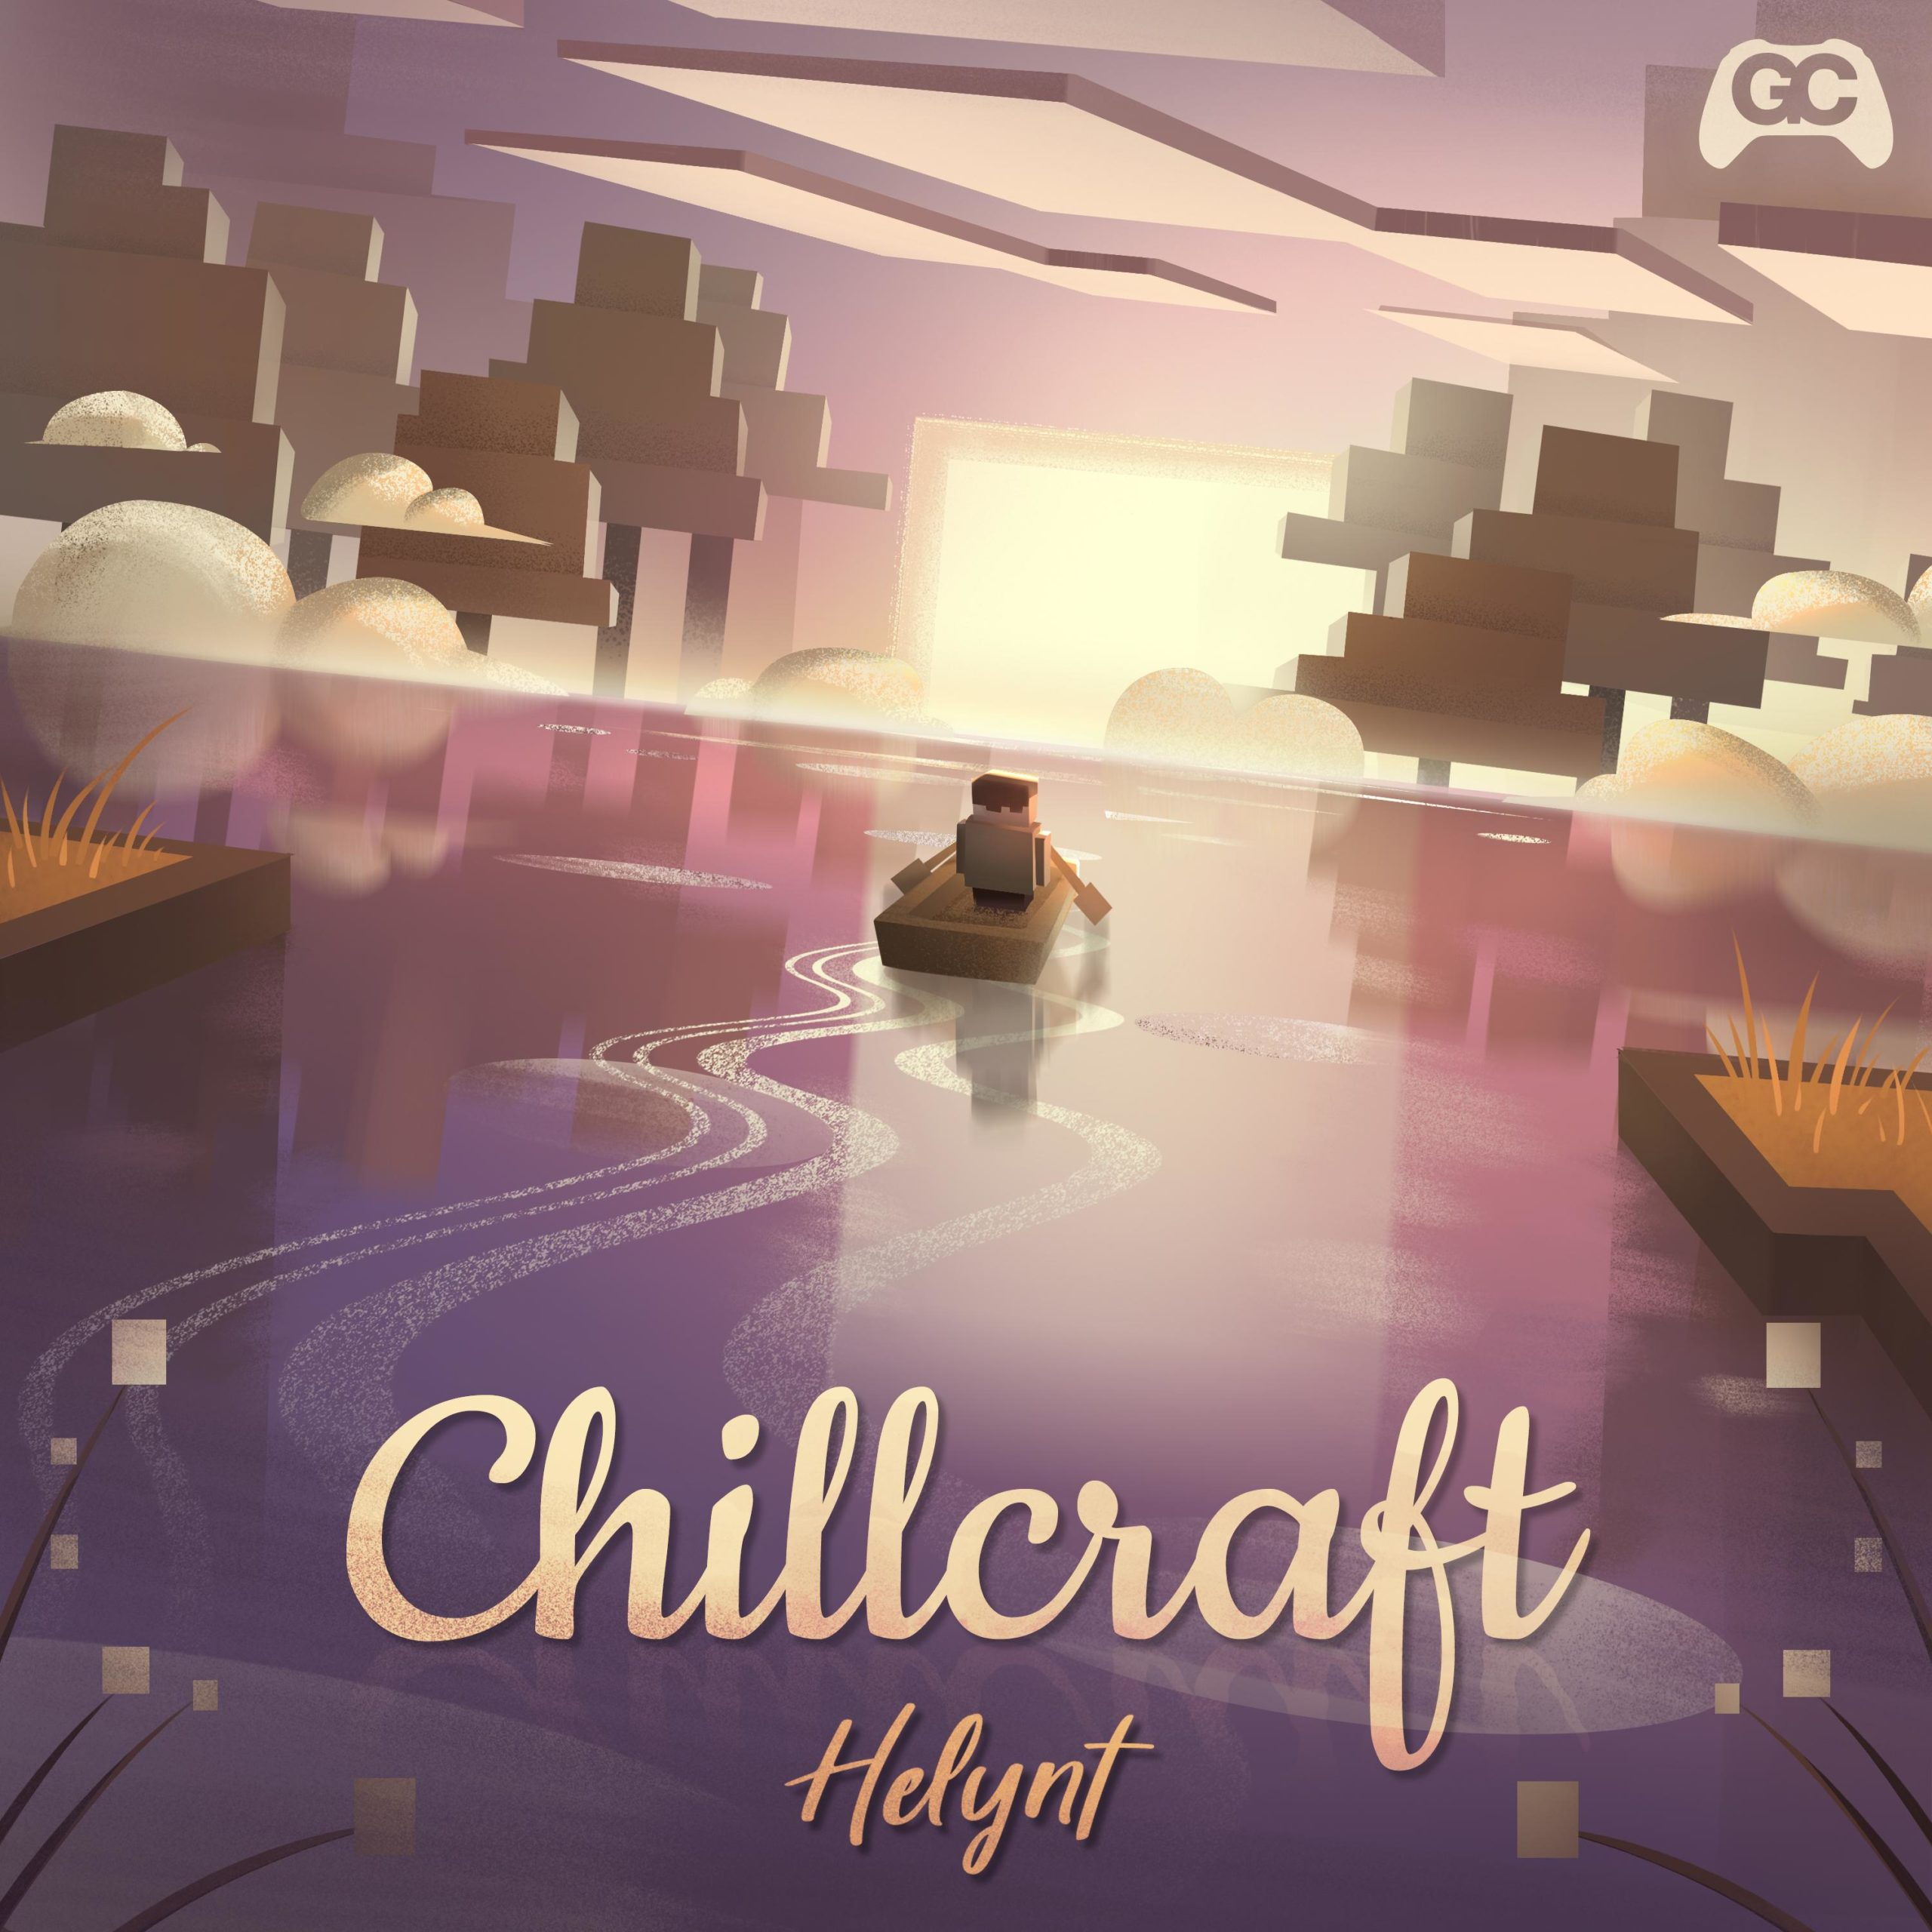 Chillcraft